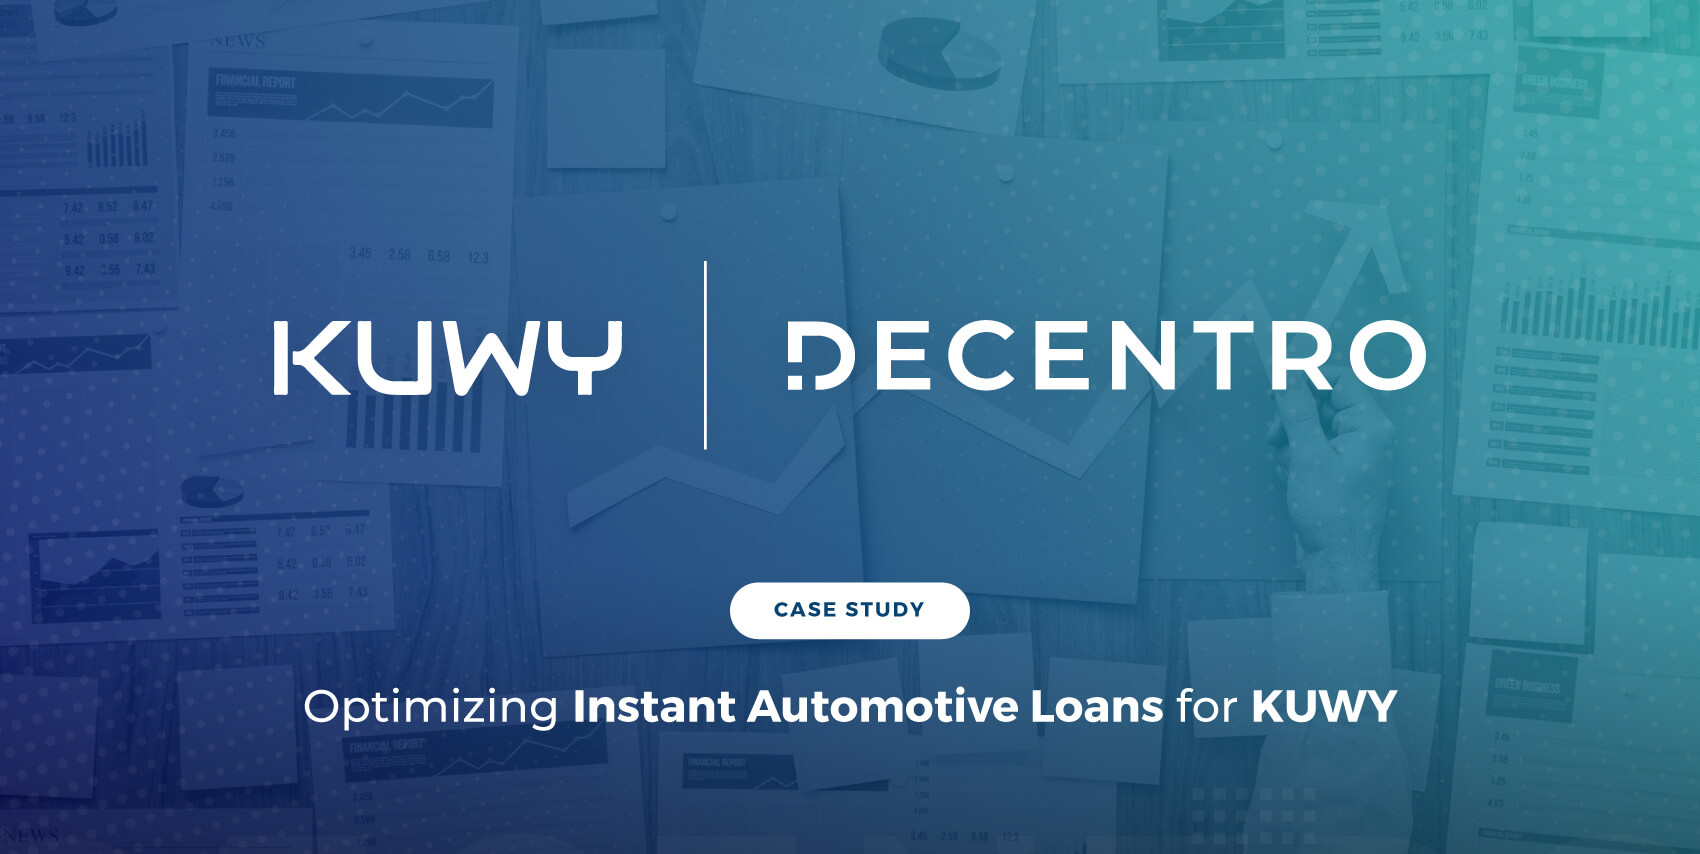 How KUWY Optimized Instant Automotive Loans with Decentro's APIs